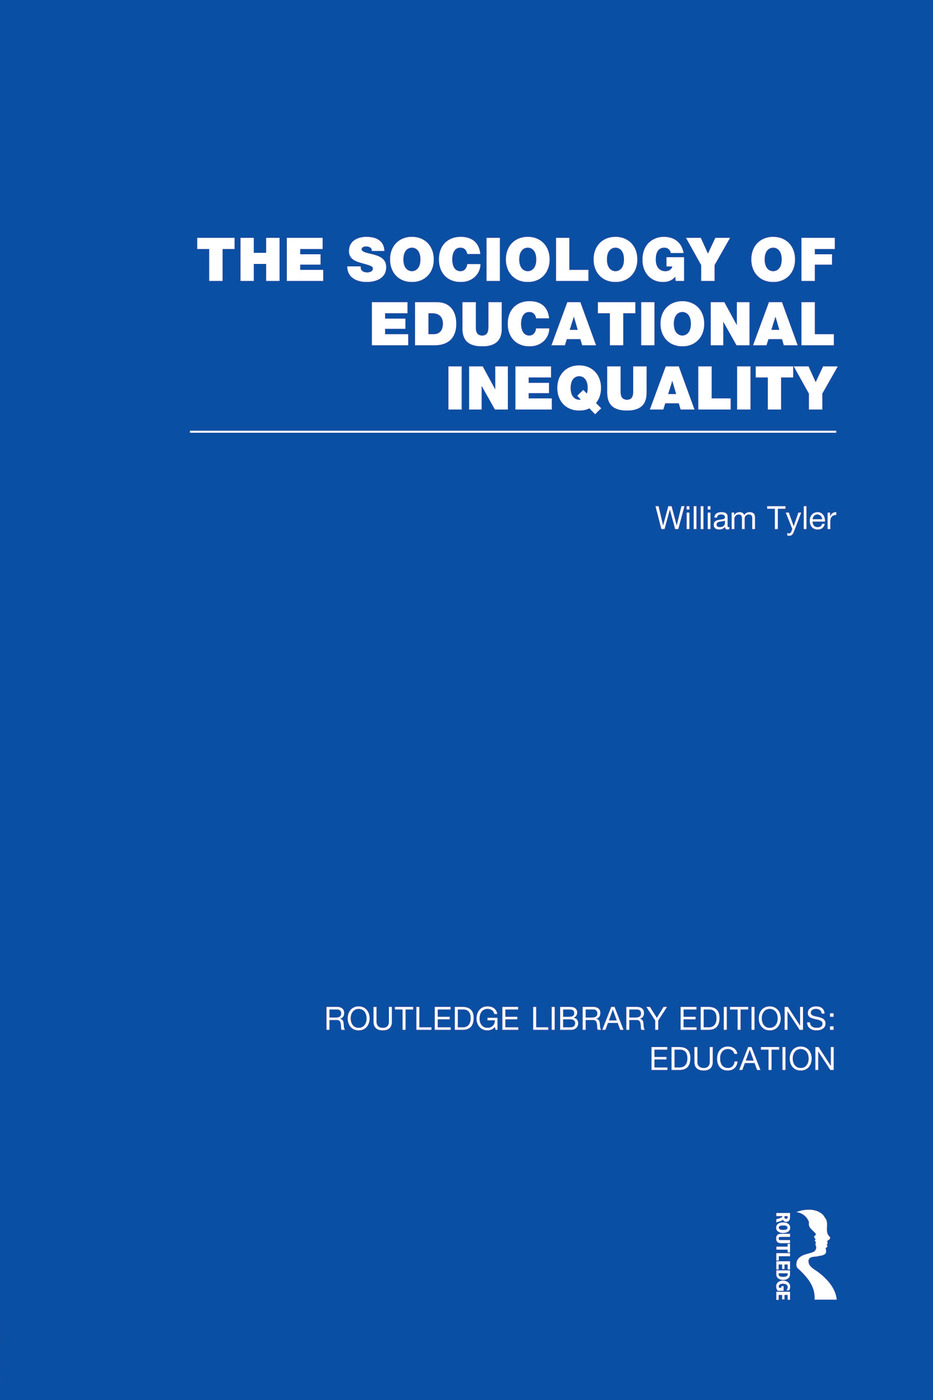 The causal structure of educational inequality